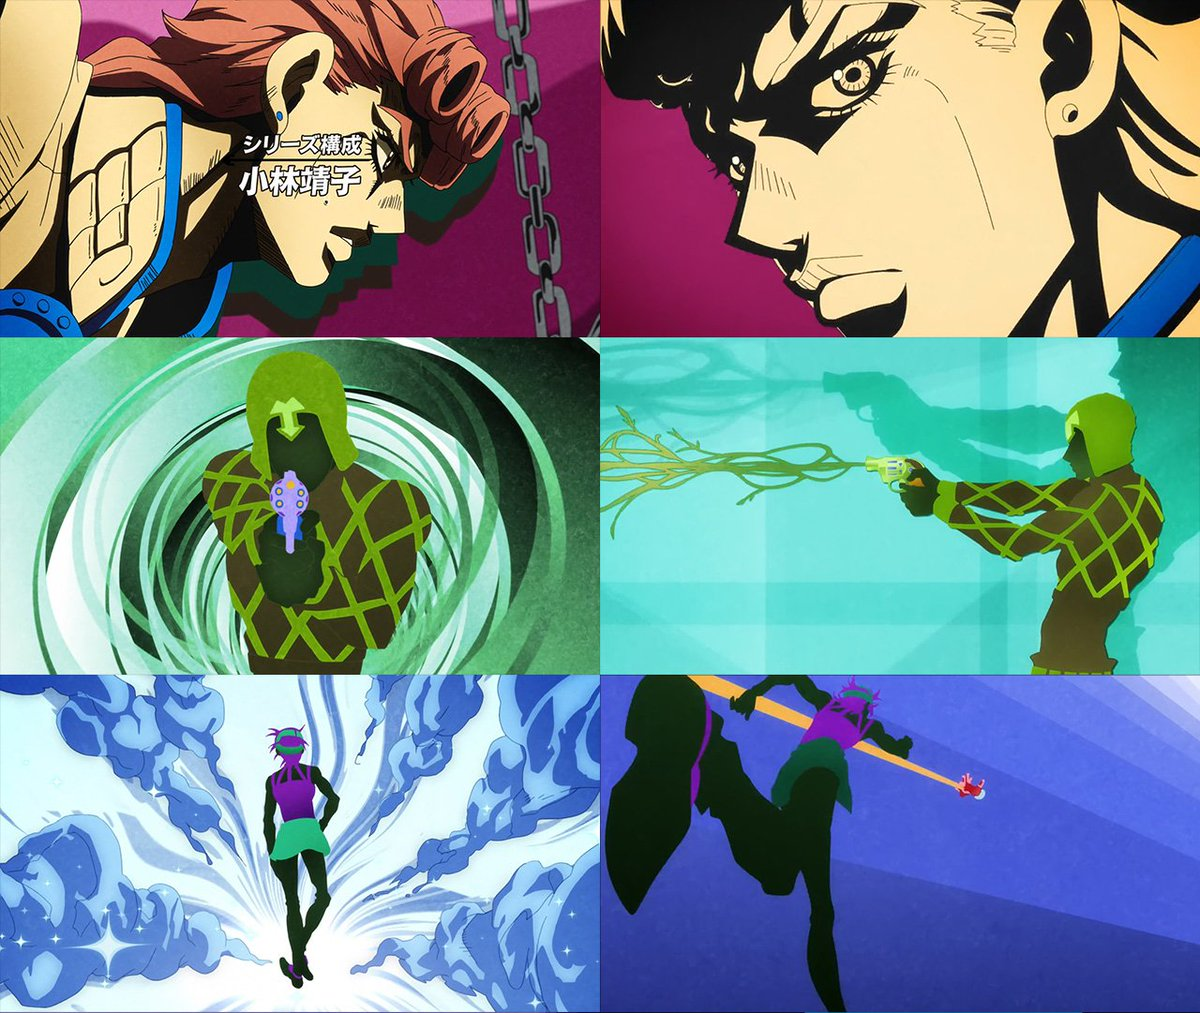 Some old ideas made it through and he maintained the stylization essentially the same. Considering how much he&#39;s used this style, it might be pretty indicative of the flair Kimura can add to Jojo, especially when (if?) he starts handling episodes himself. <br>http://pic.twitter.com/A3P32Xaf5f